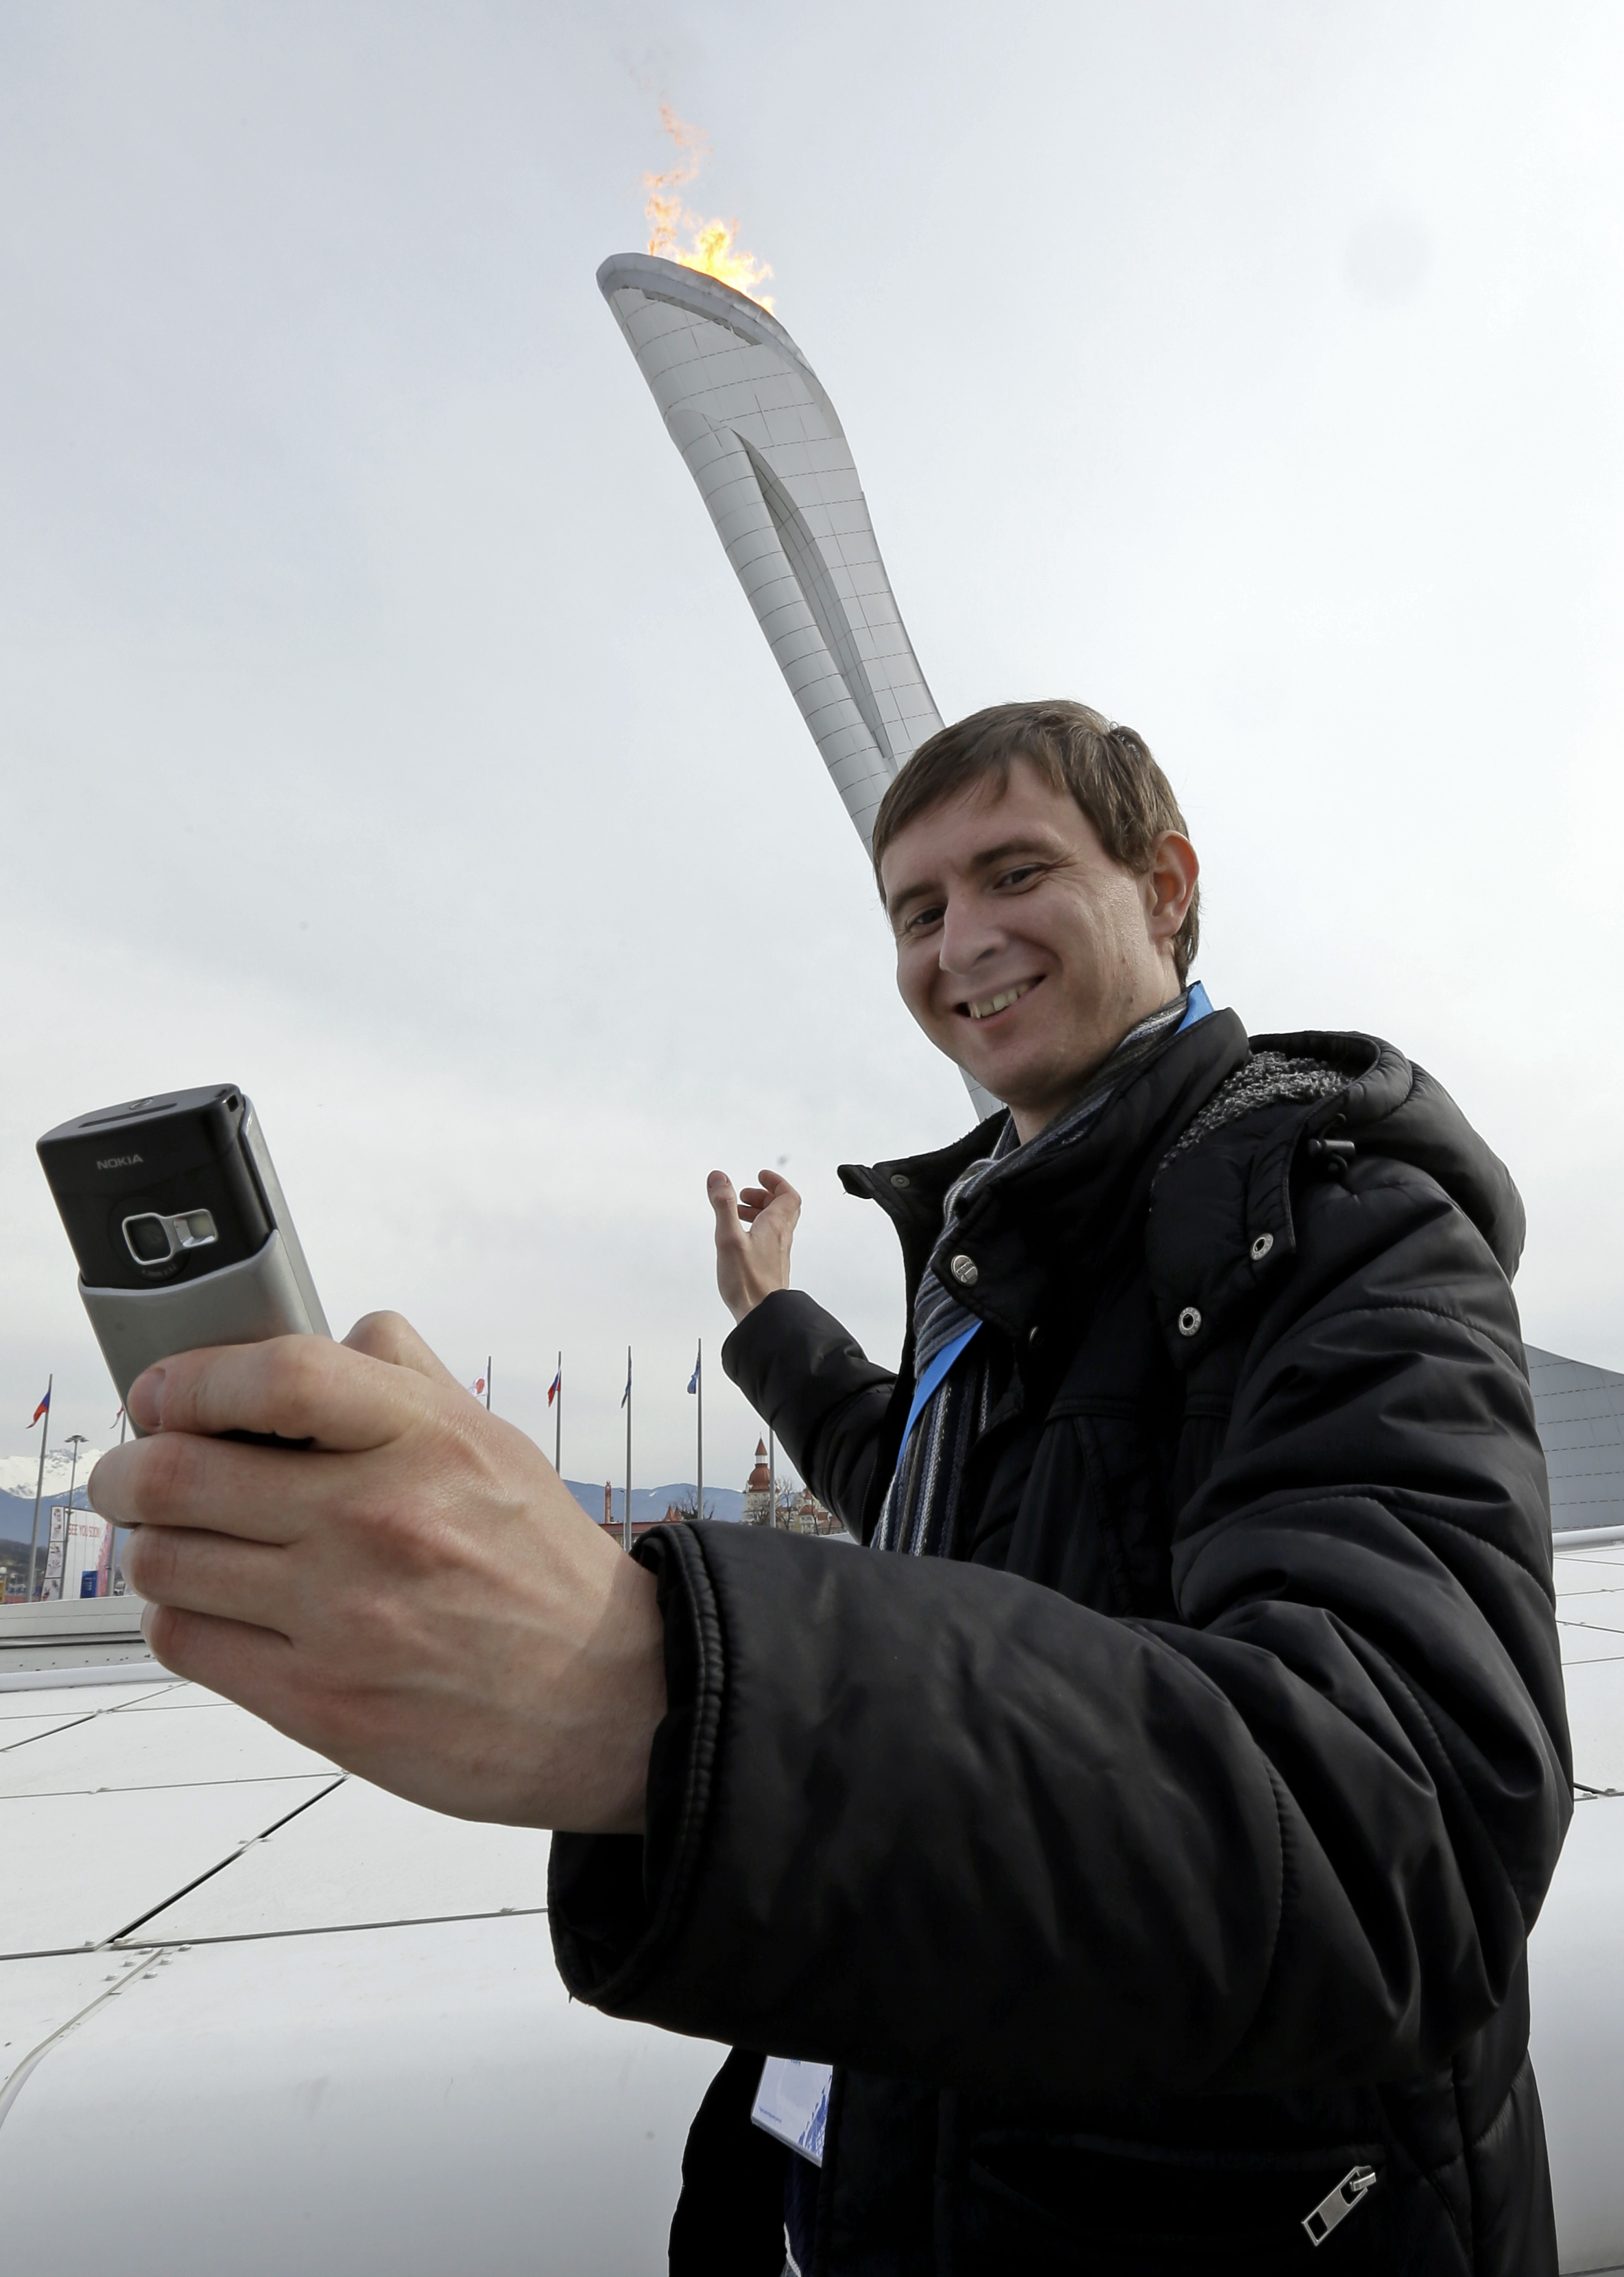 Sartakov Pavel Albertovich takes a selfie in front of the Olympic Cauldron at the 2014 Winter Olympics, Sunday, Feb. 9, 2014, in Sochi, Russia. (AP Photo/Morry Gash)